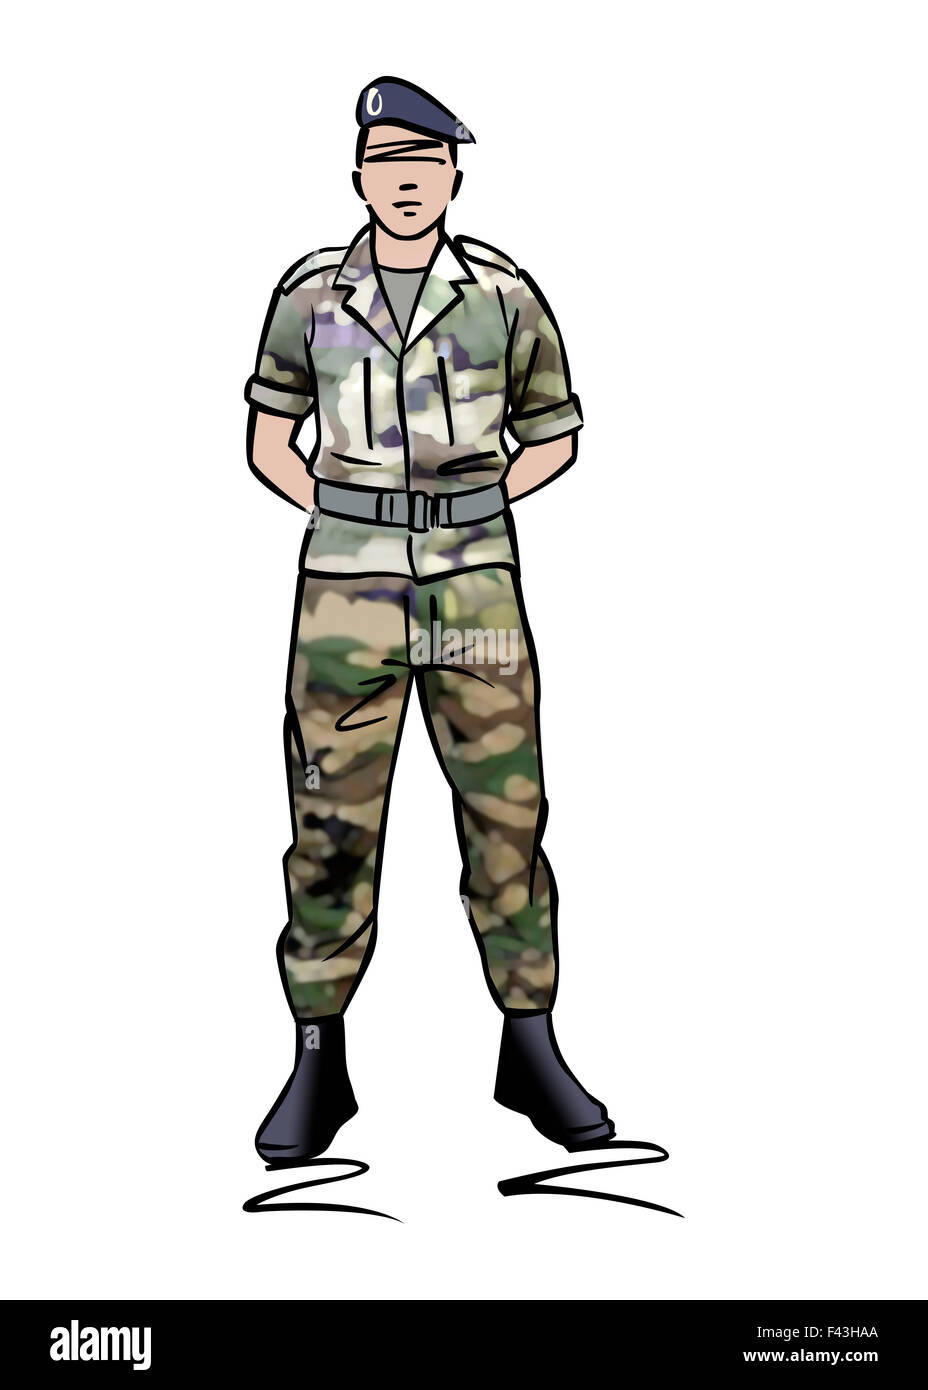 Illustration of a soldier dressed in camouflage Stock Photo